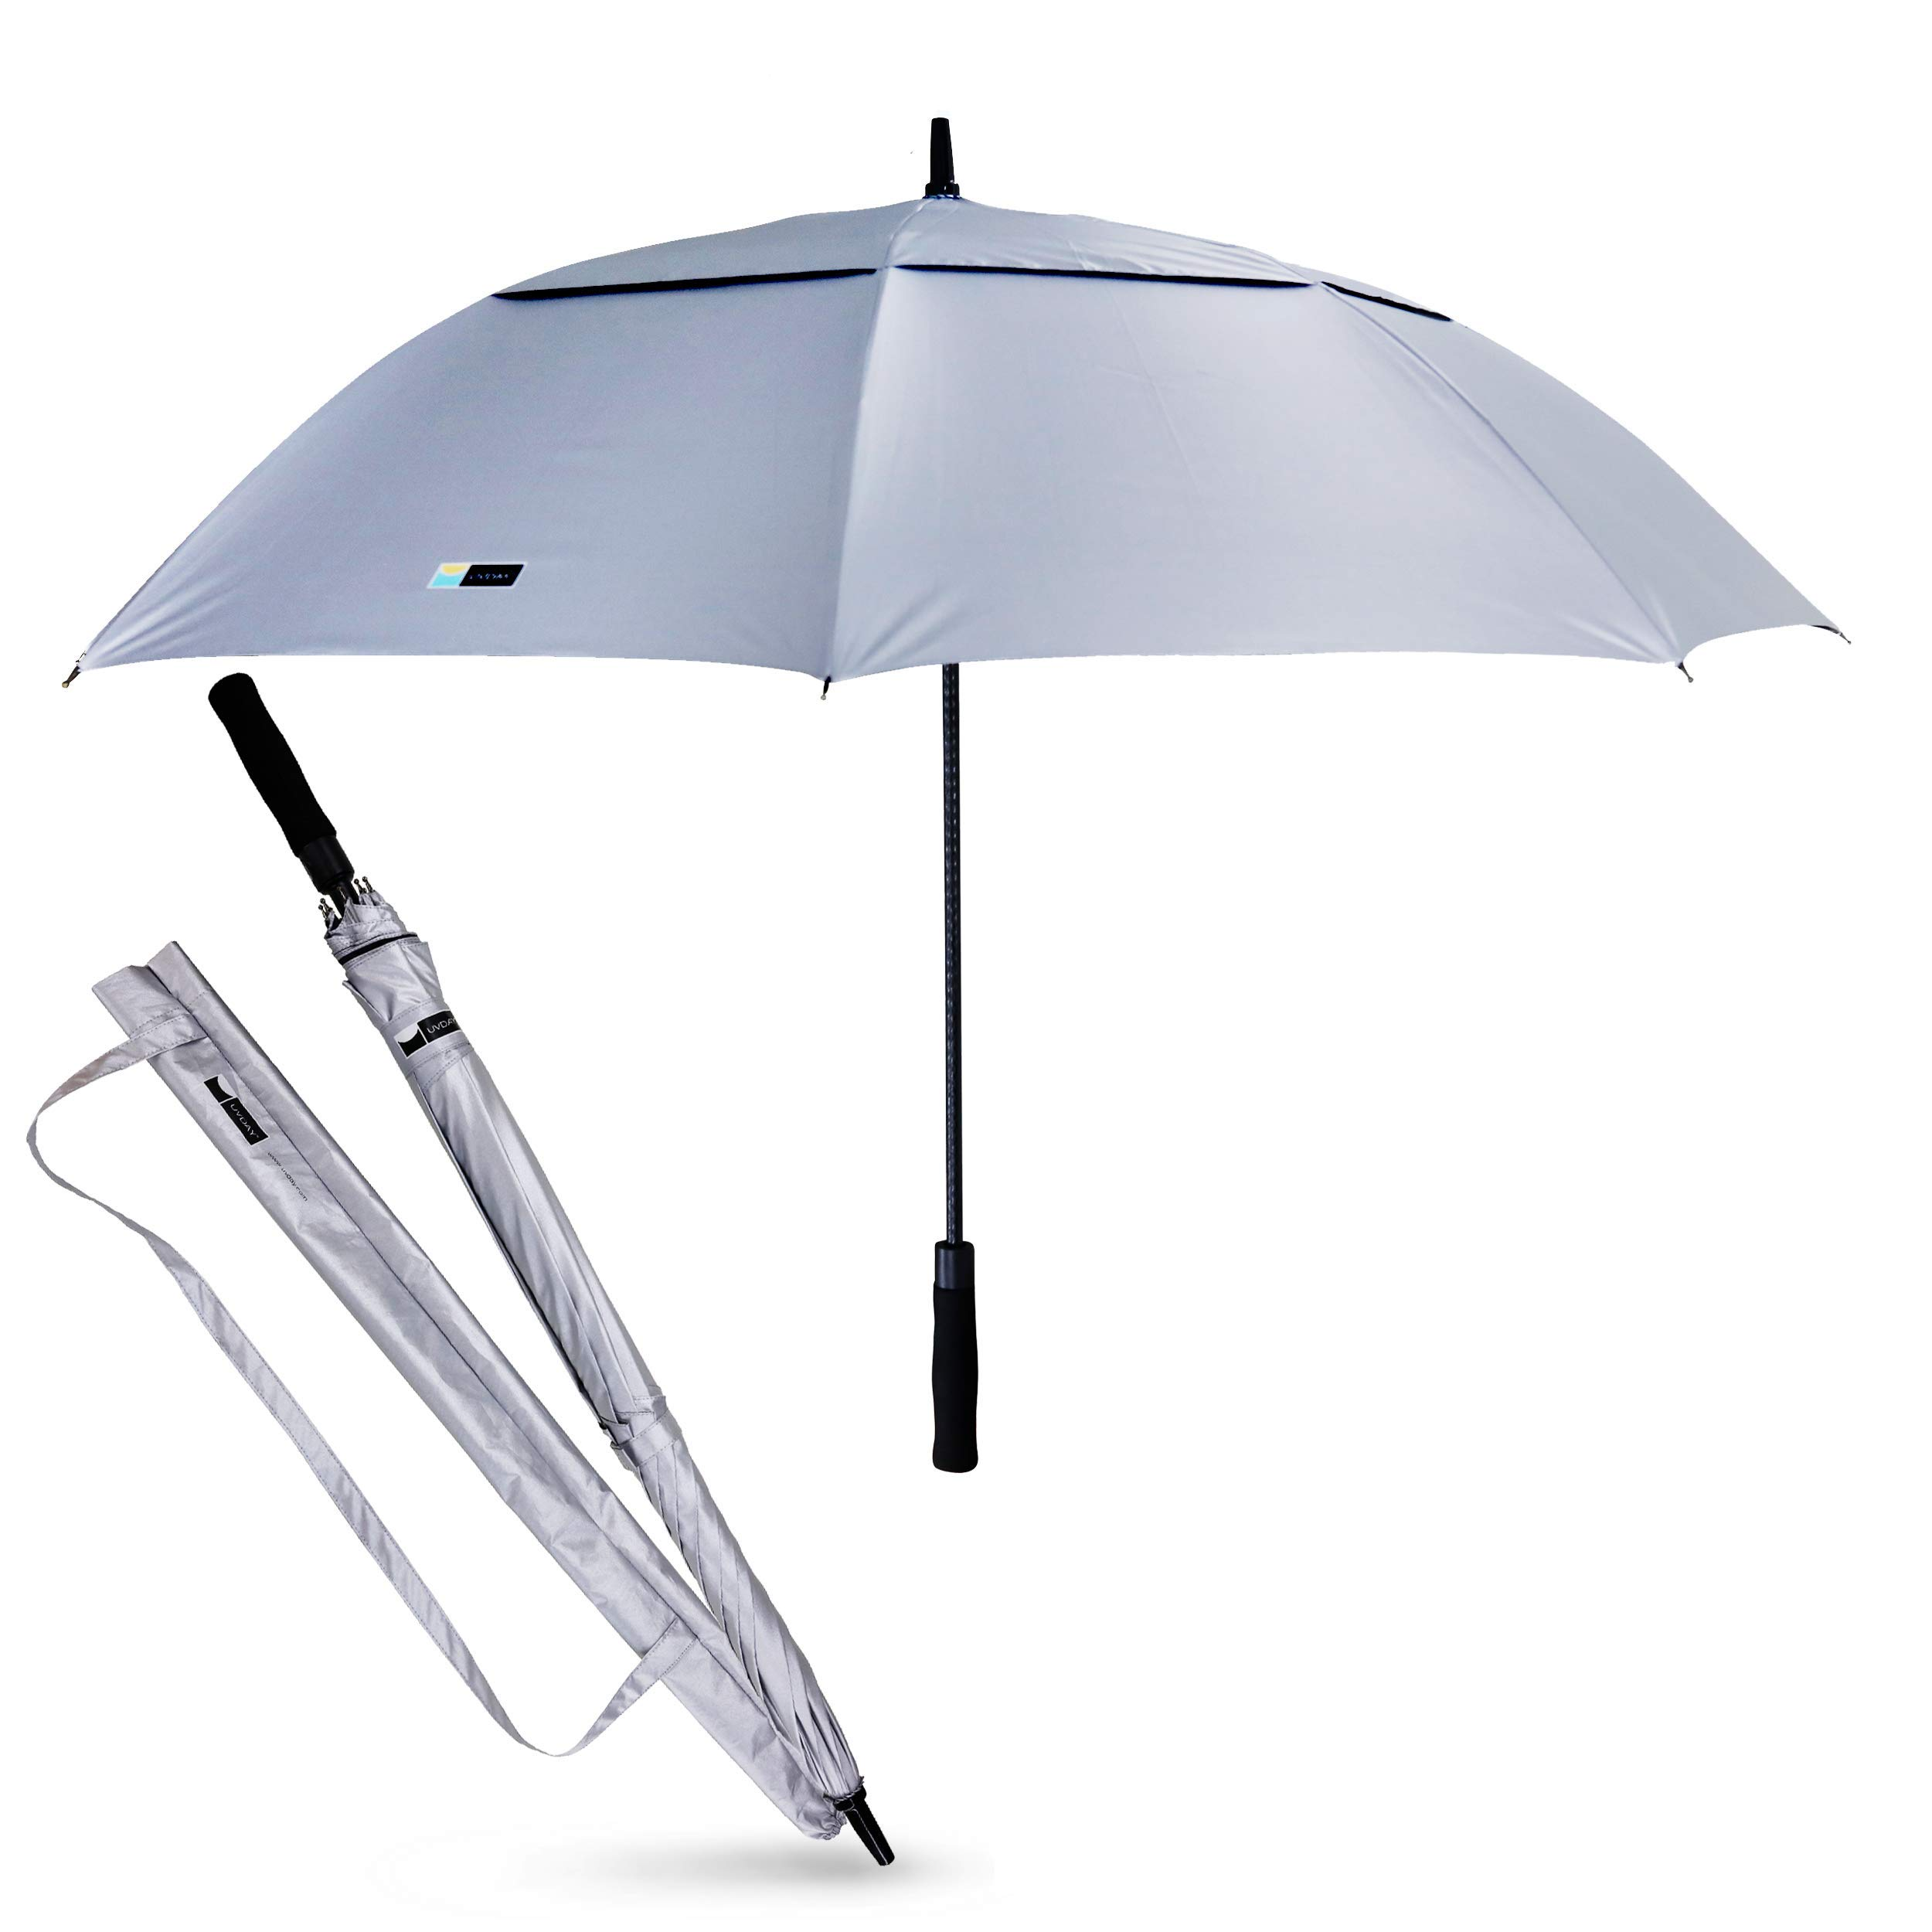 UVDAY Silver UV Protection Long Large Travel Golf Sun Umbrella UPF50+ 31'' with Wearable Shoulder Sleeve